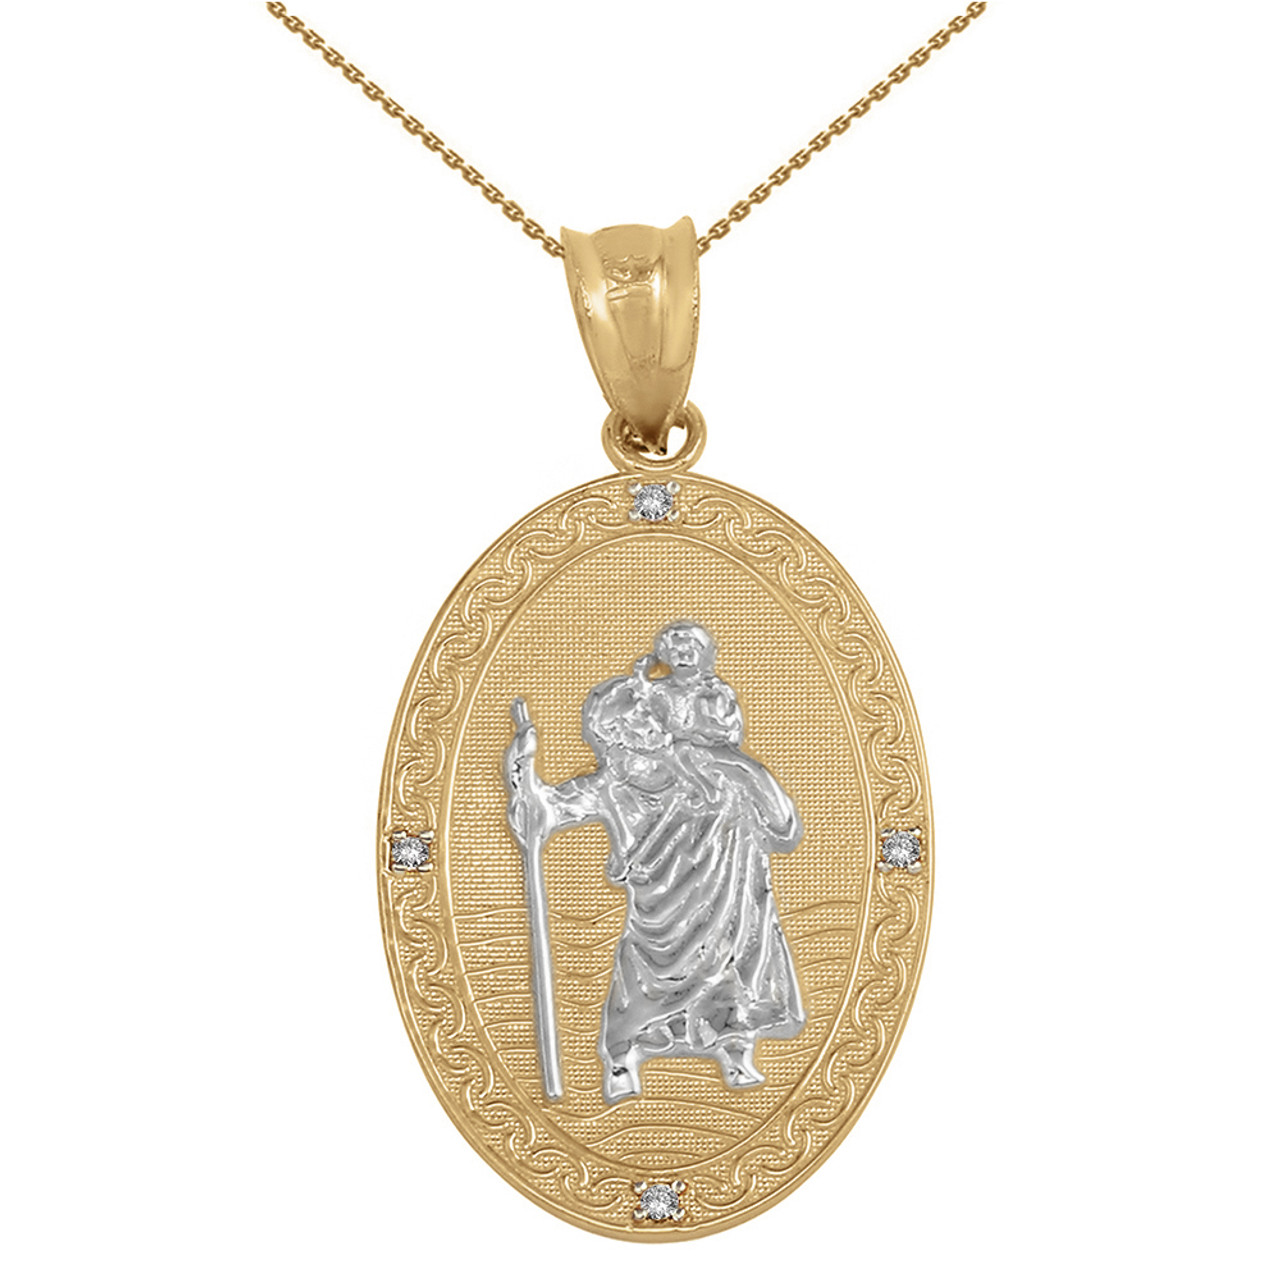 Solid yellow two tone gold saint christopher medallion diamond solid yellow two tone gold saint christopher medallion diamond pendant necklace 112 aloadofball Gallery